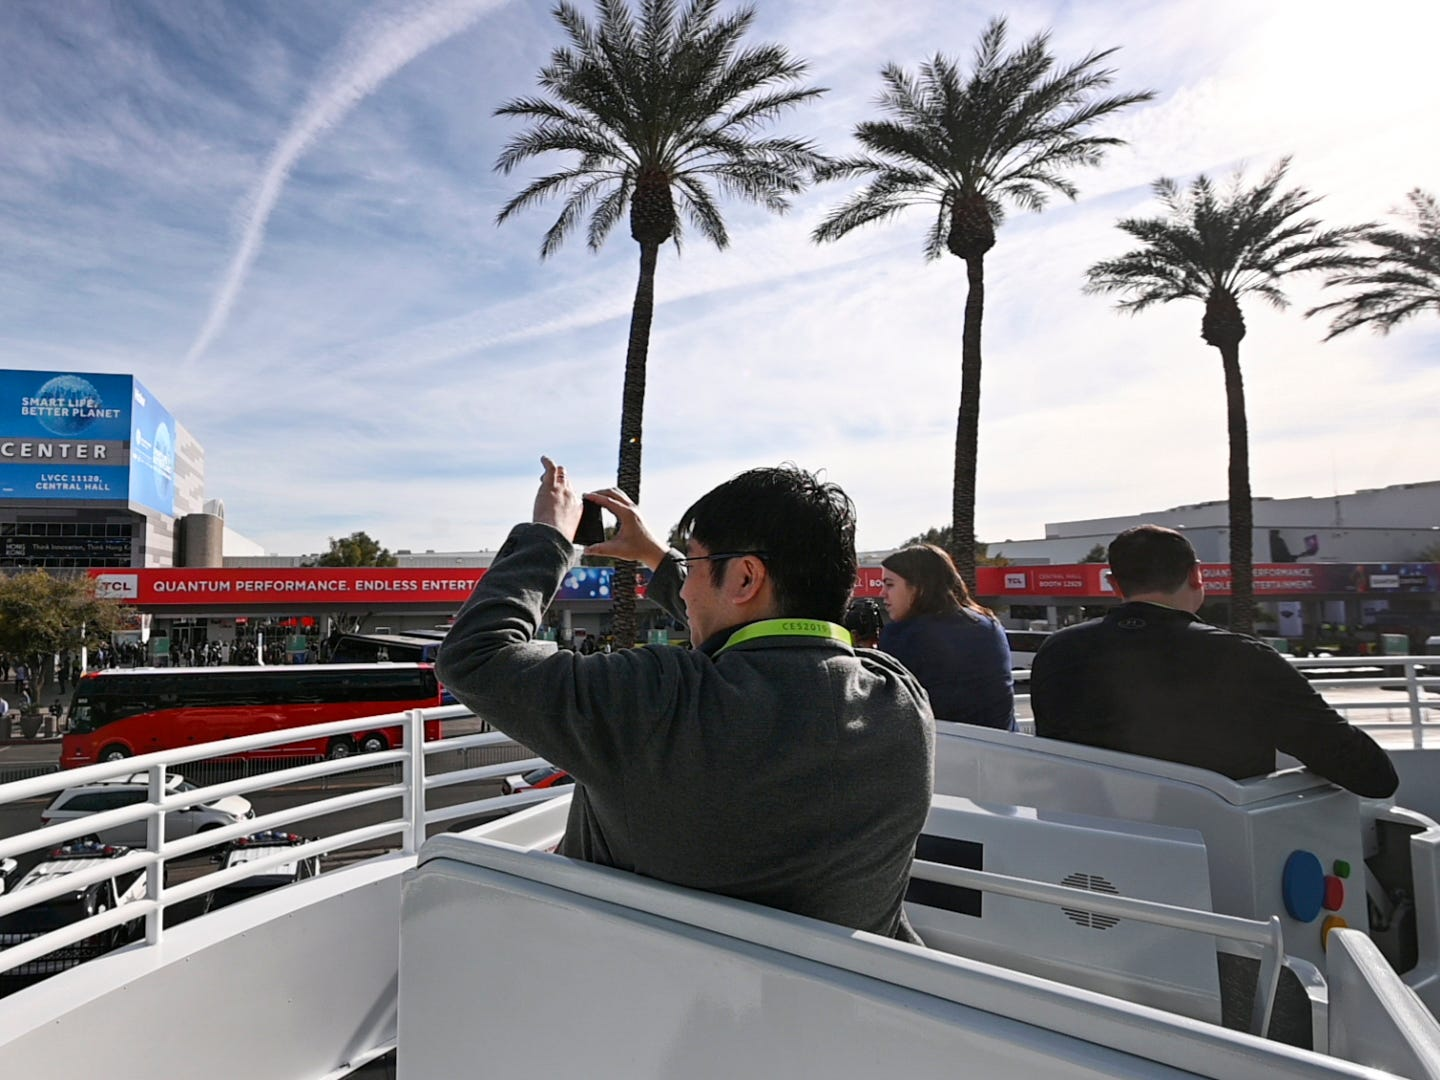 Riders on a Disneyesque roller coaster ride at Google's stand alone display get a good view of the Las Vegas Convention Center.